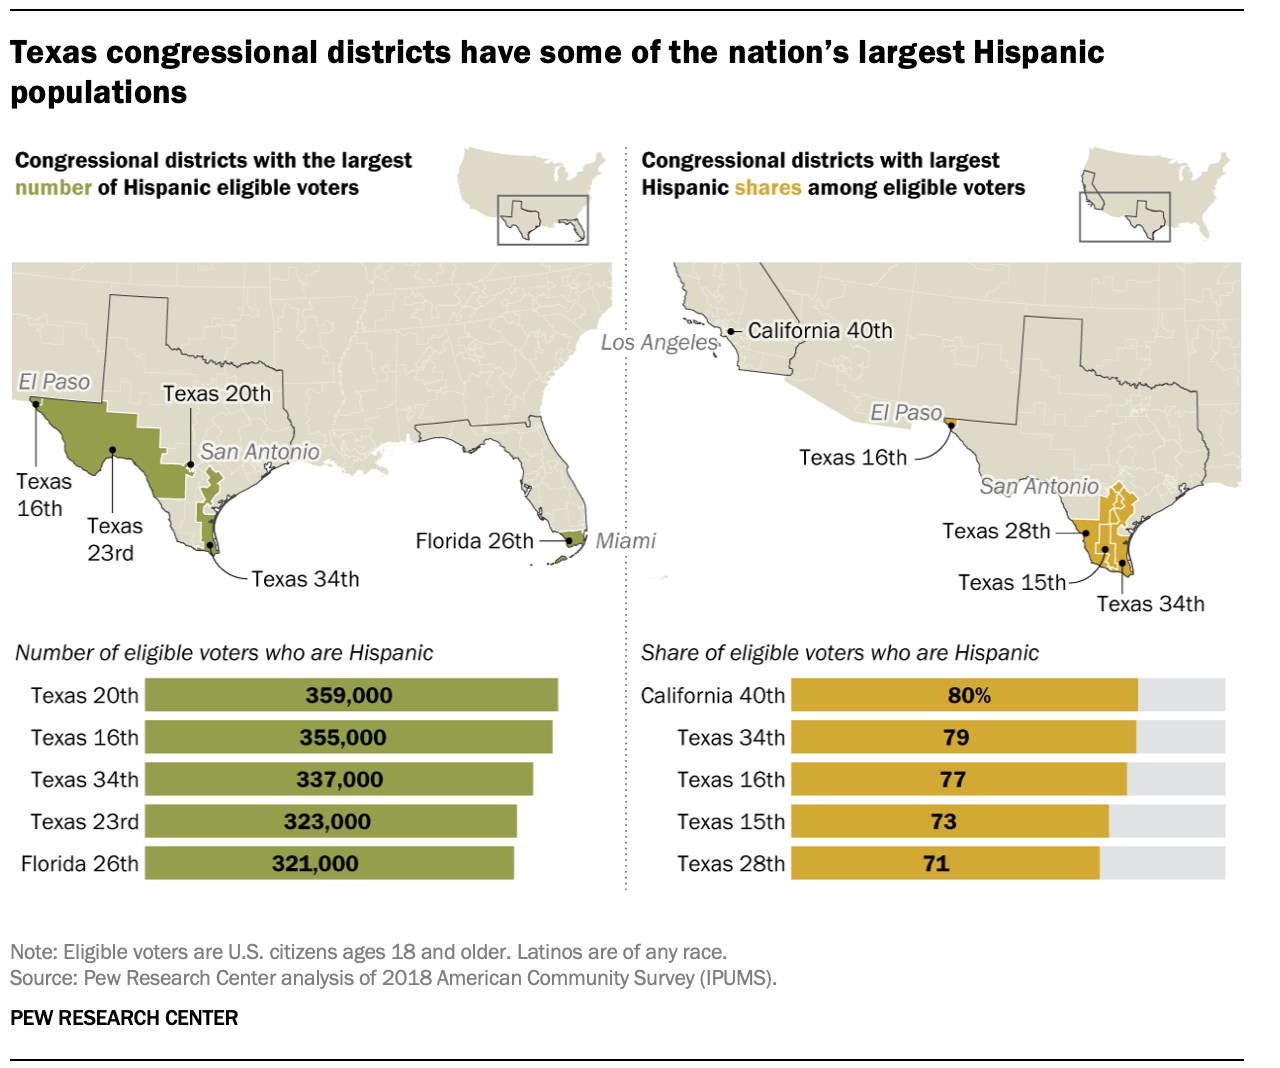 Texas congressional districts have some of the nation's largest Hispanic populations